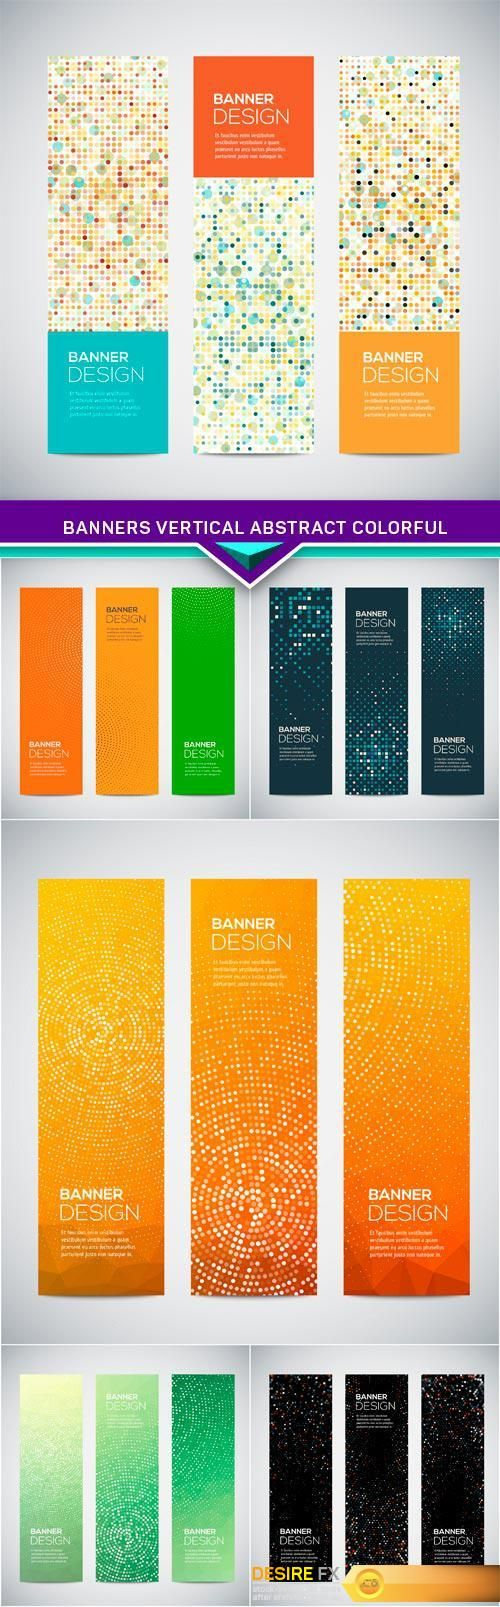 Banners vertical abstract colorful 6X EPS http://www.desirefx.me/banners-vertical-abstract-colorful-6x-eps/